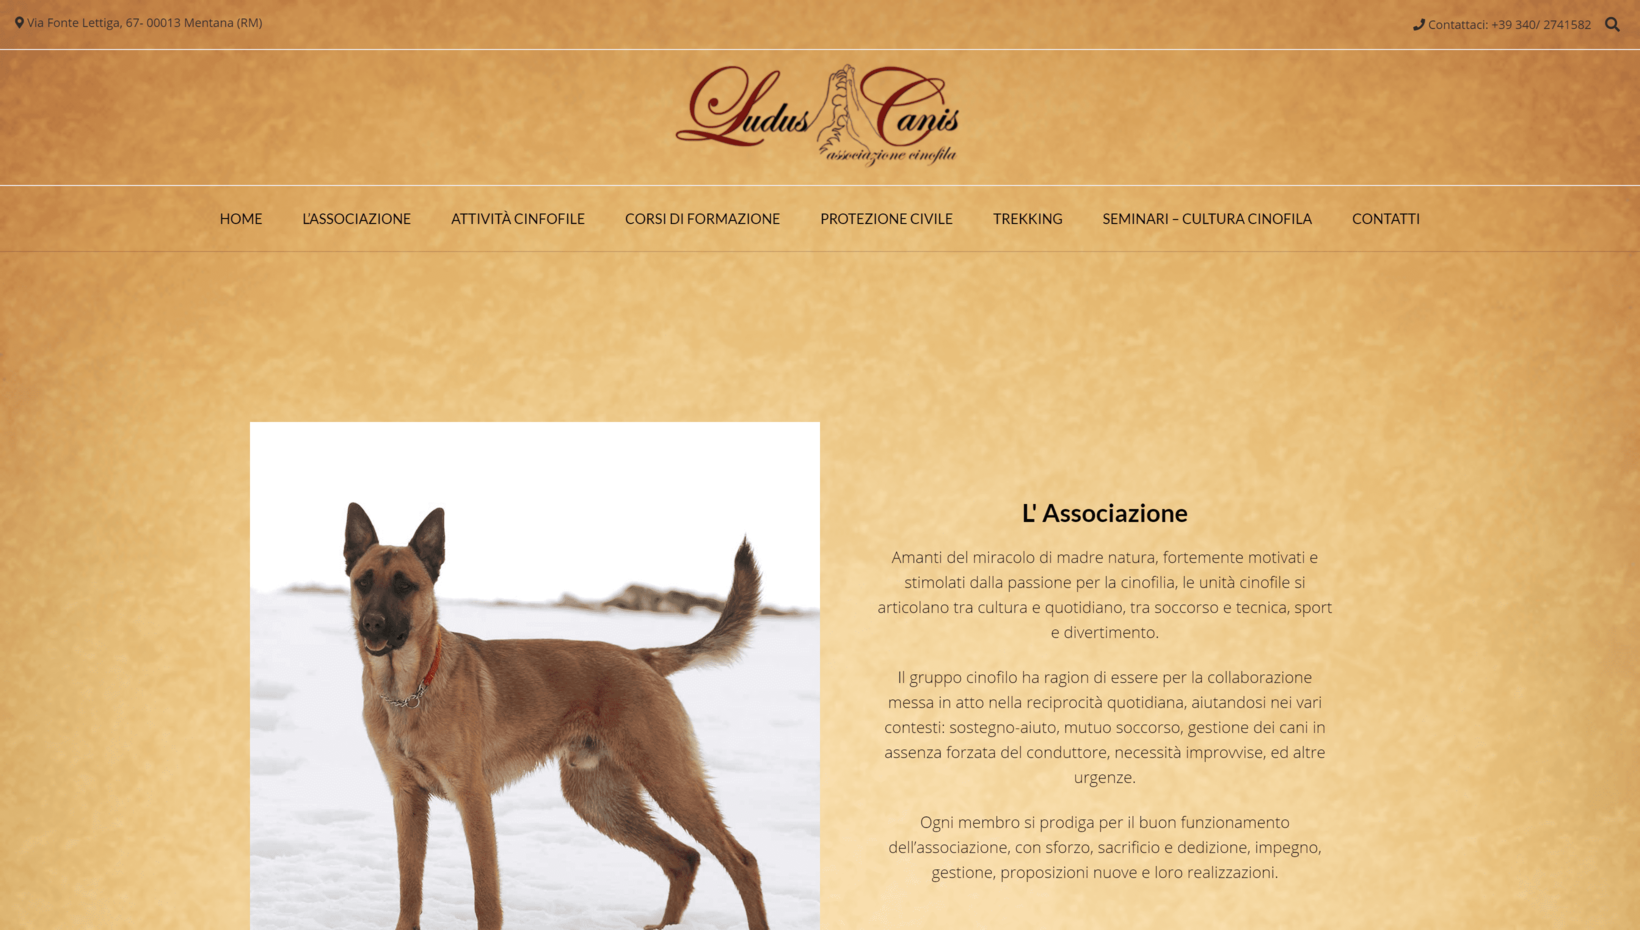 Luidus Canis Association